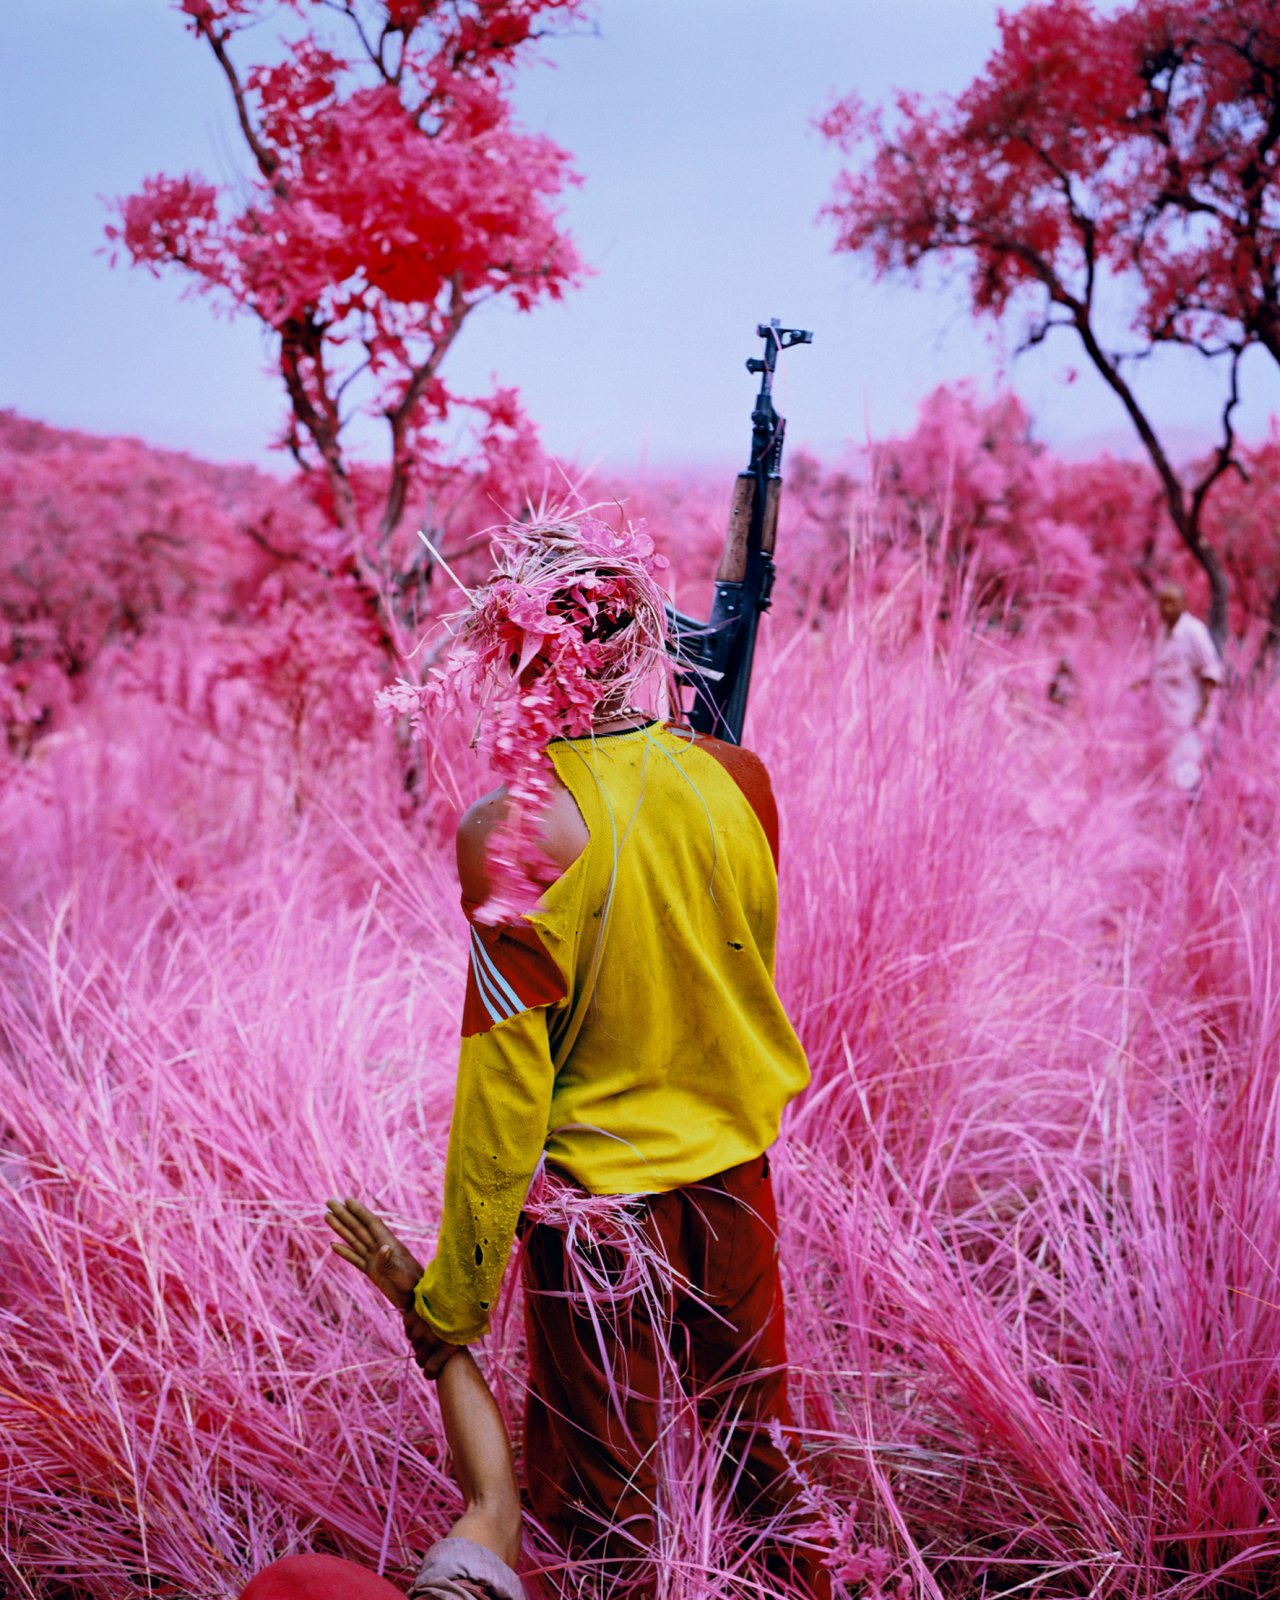 South Kivu, from the series The Enclave, 2012 © Richard Mosse/ courtesy of the artist